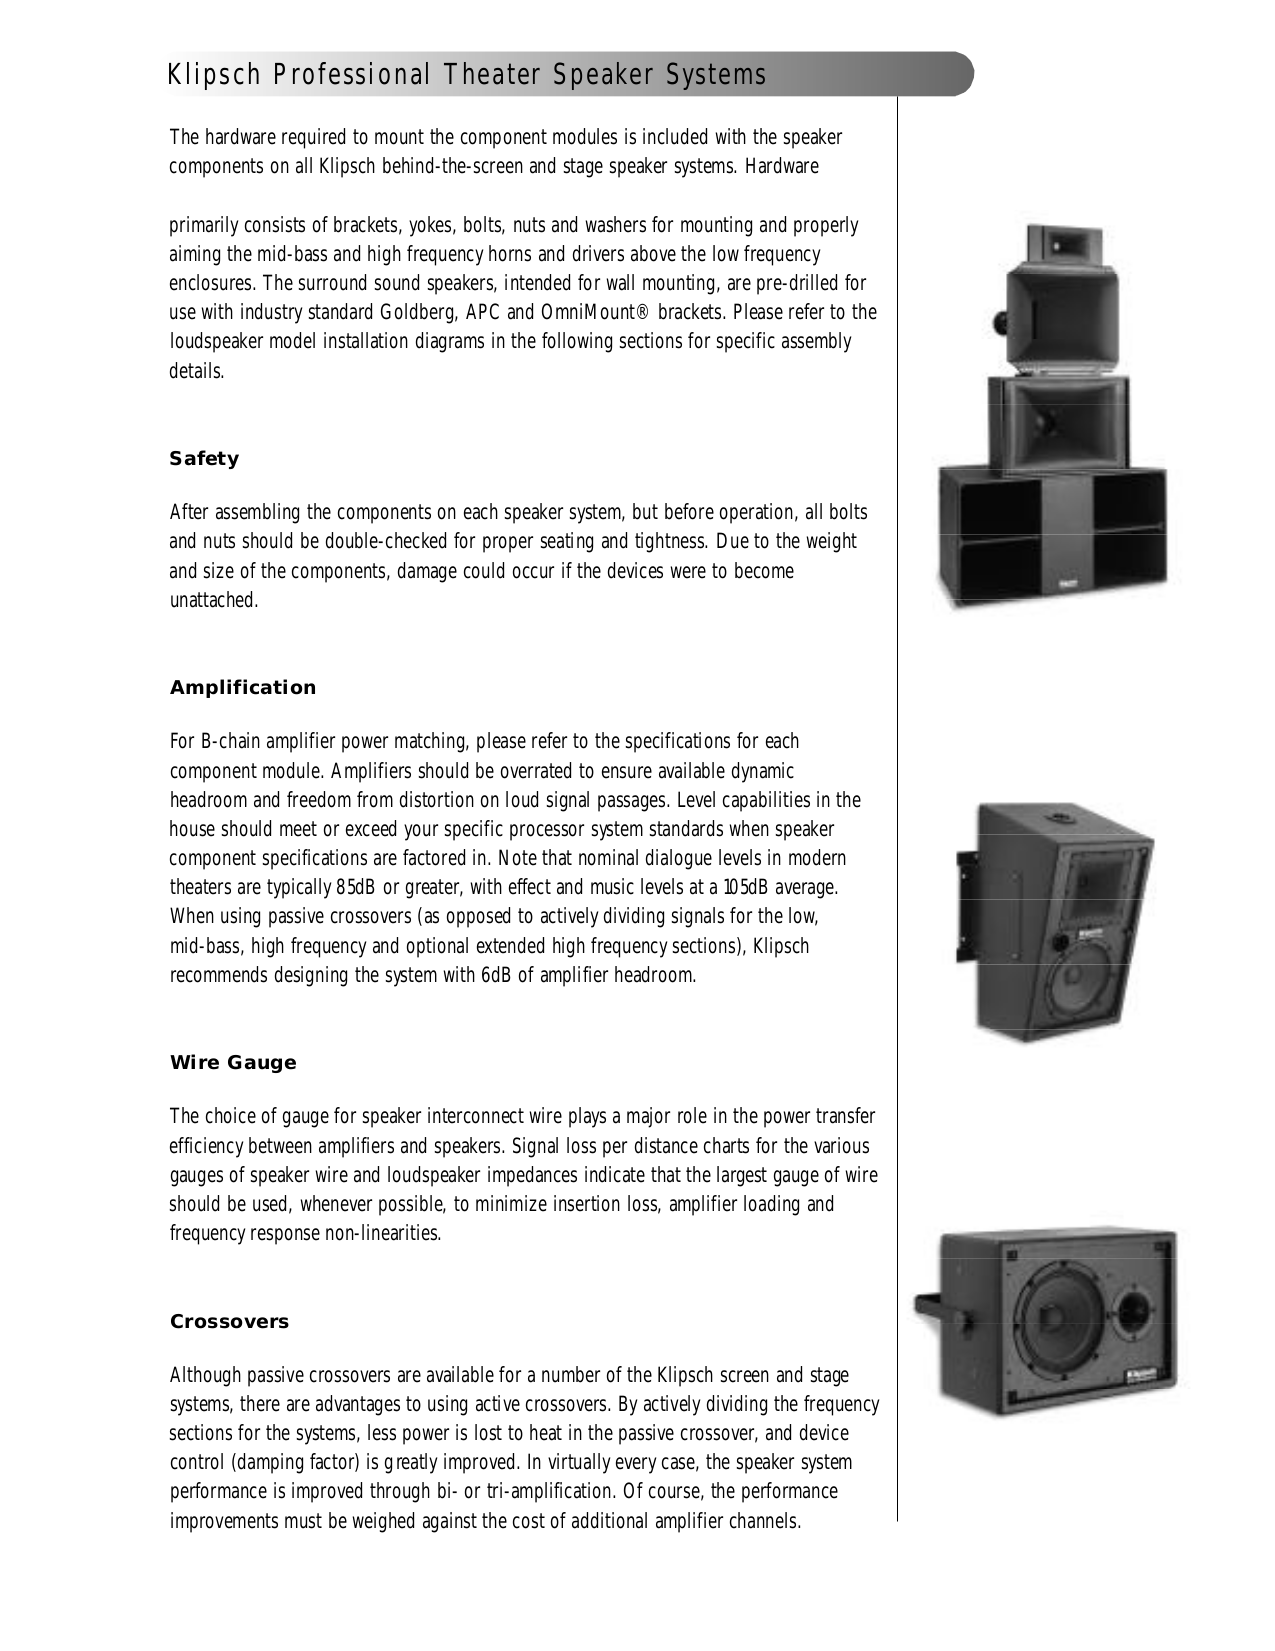 Generous mcm wire sizes contemporary electrical and wiring pdf manual for klipsch speaker kpt mcm grand keyboard keysfo Images